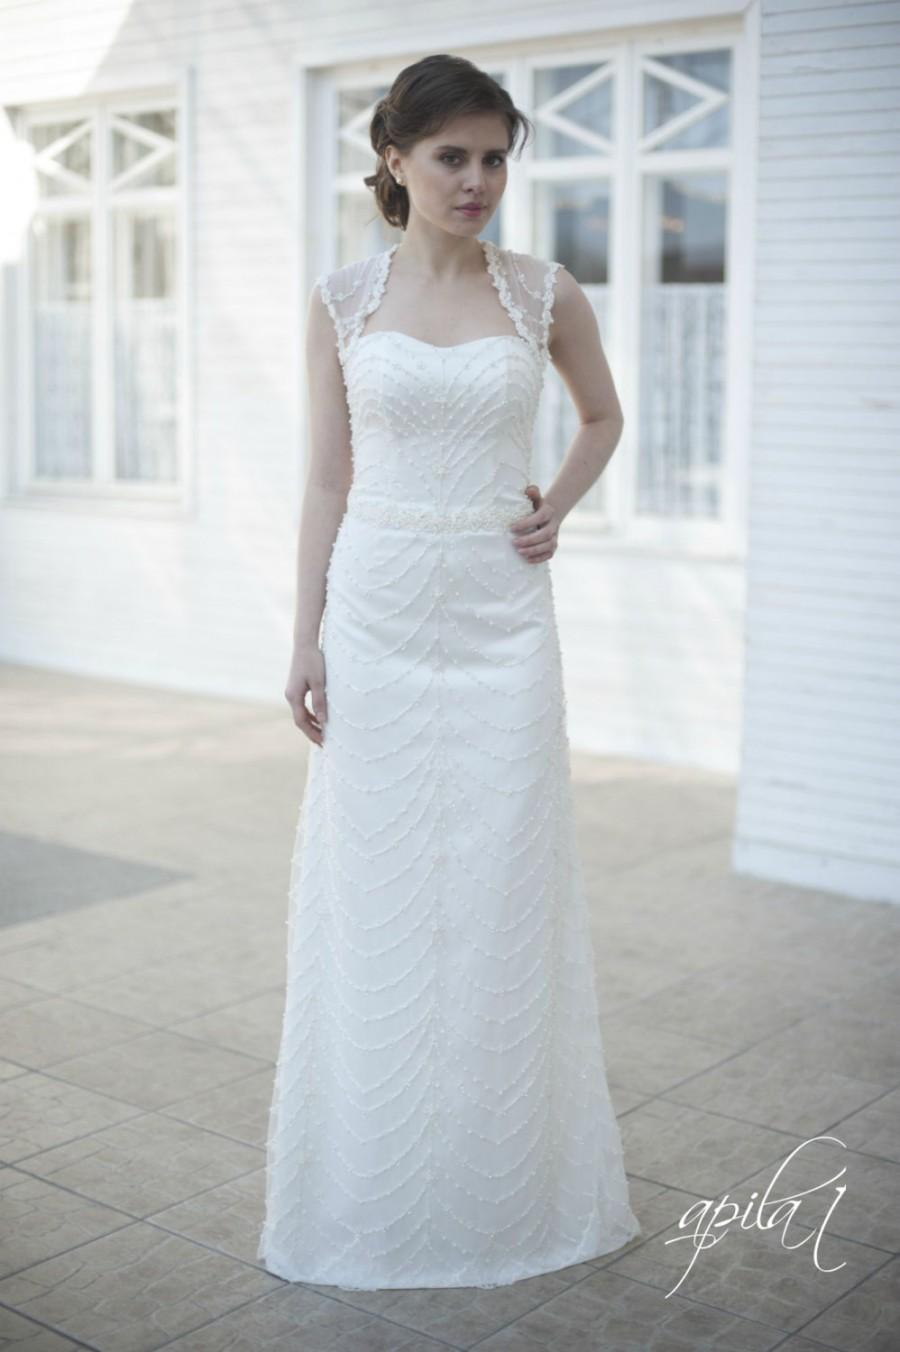 Lace Long Wedding Dress, Satin And Lace Bridal Gown With Pearls L6 ...